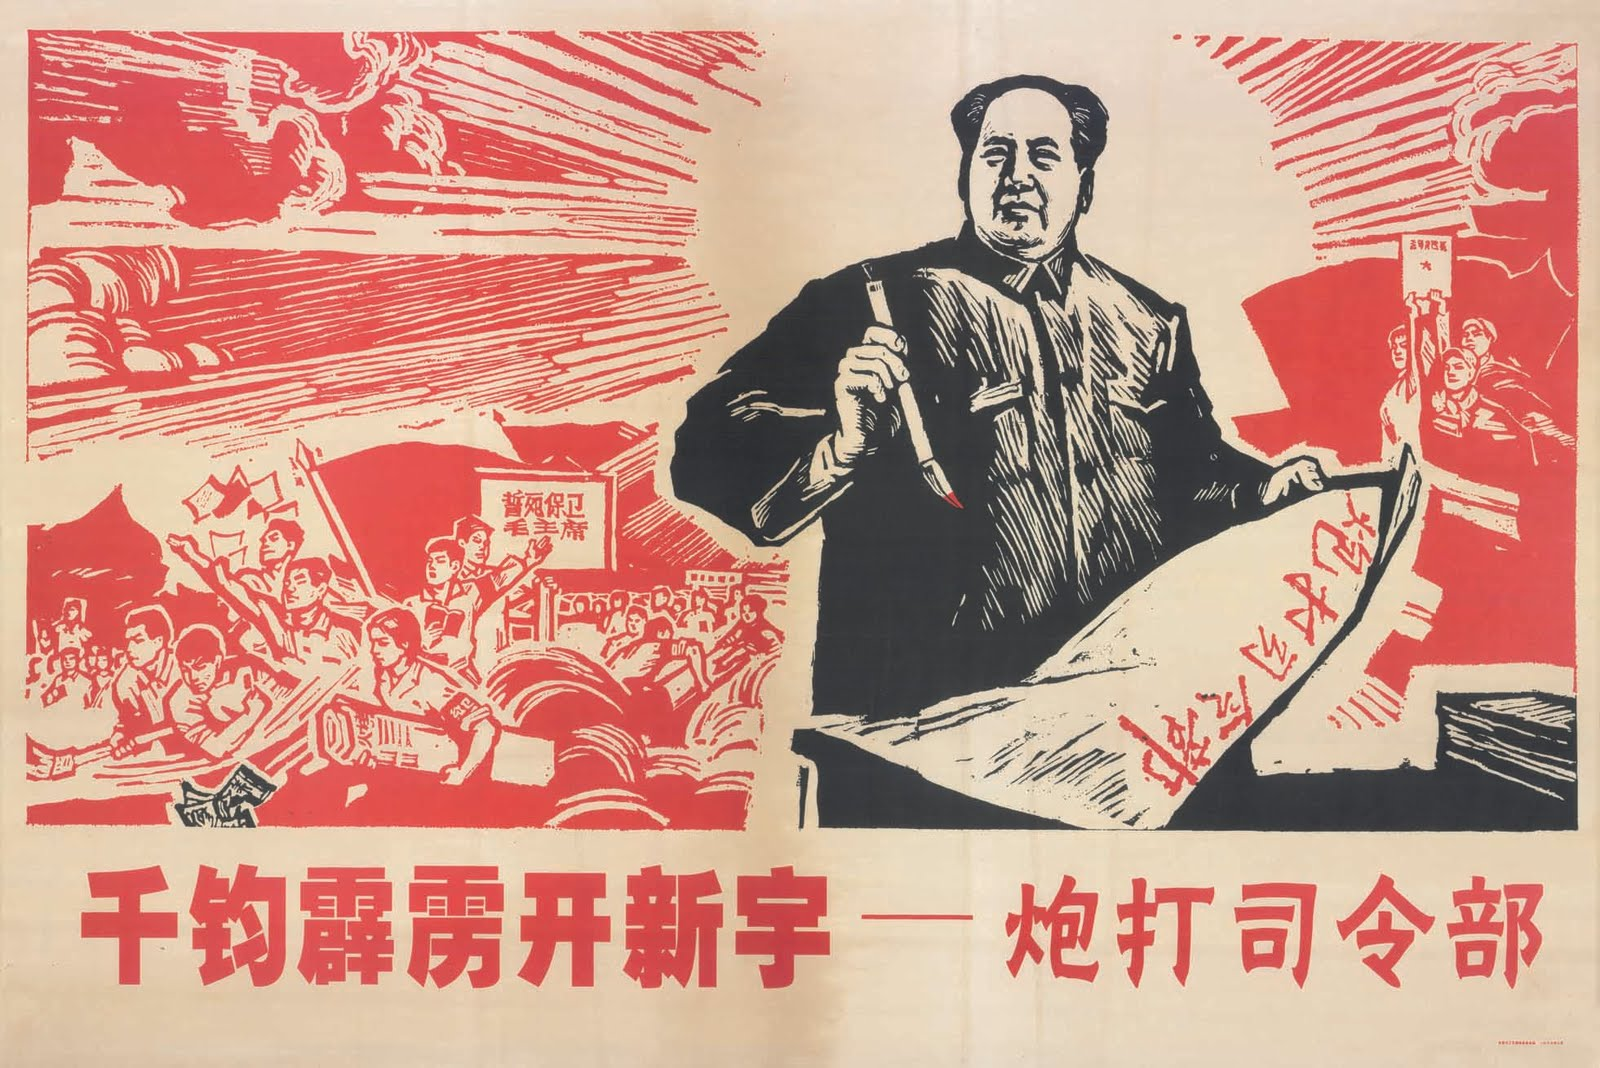 moa zedong against revisionism in the Mao zedong, who led the chinese people through a long revolution and then ruled the nation's communist government from its establishment in mao was born in china in 1893 during the 1910s, he joined the nationalist movement against the decadent and ineffective royal government of china.